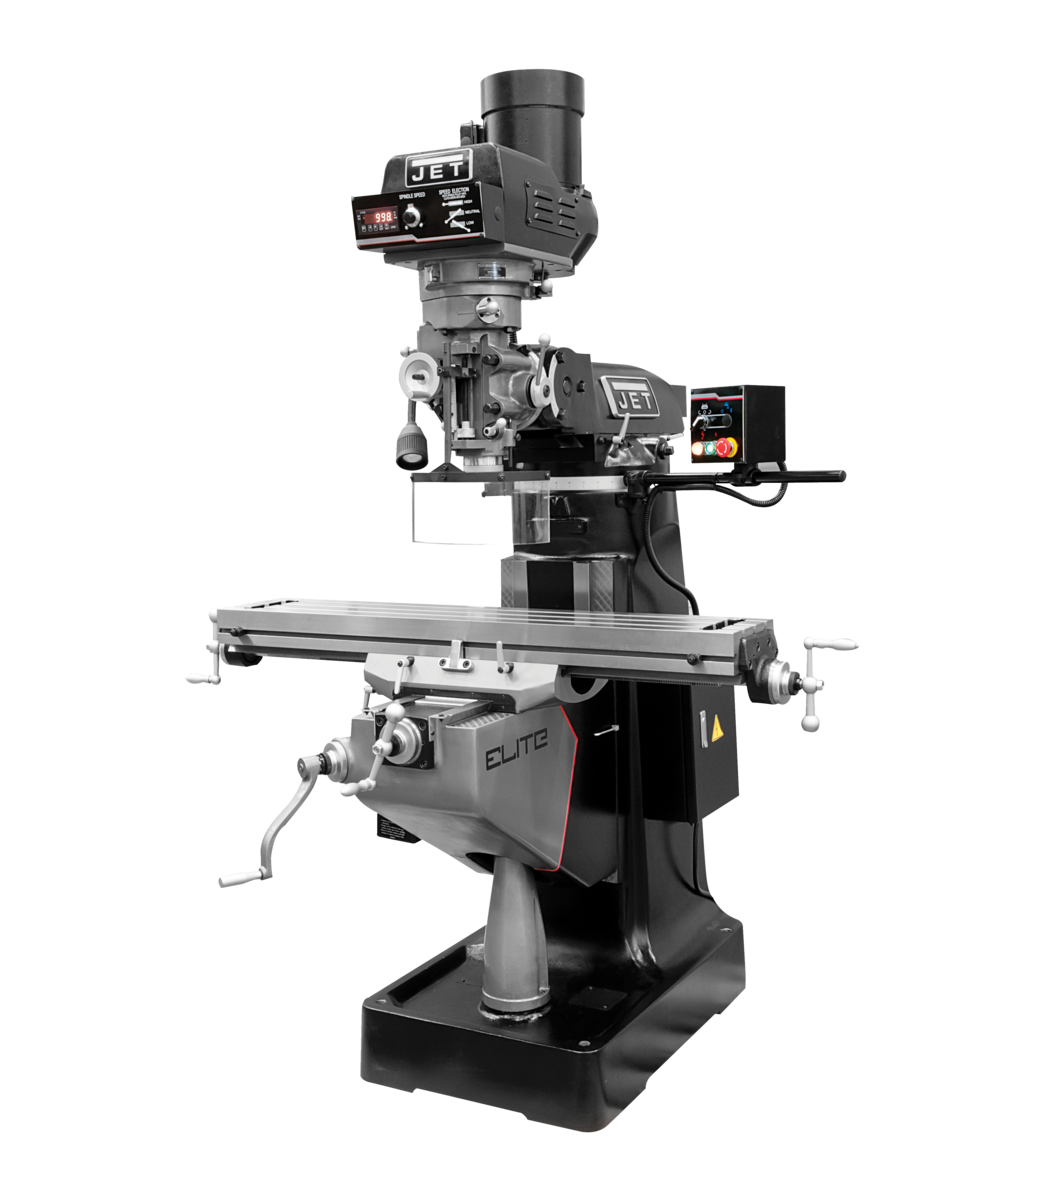 EVS-949 Mill with 3-Axis Newall DP700 (Knee) DRO and Servo X, Y, Z-Axis Powerfeeds